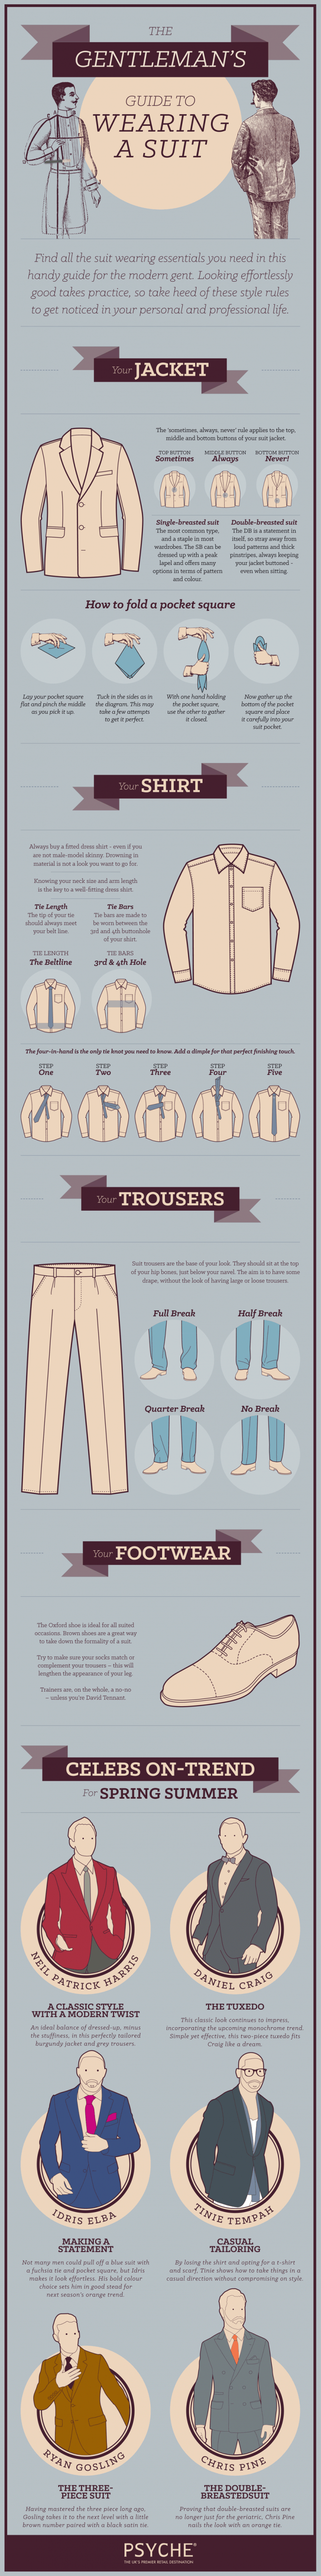 Gentleman's Guide to Wearing a Suit Infographic